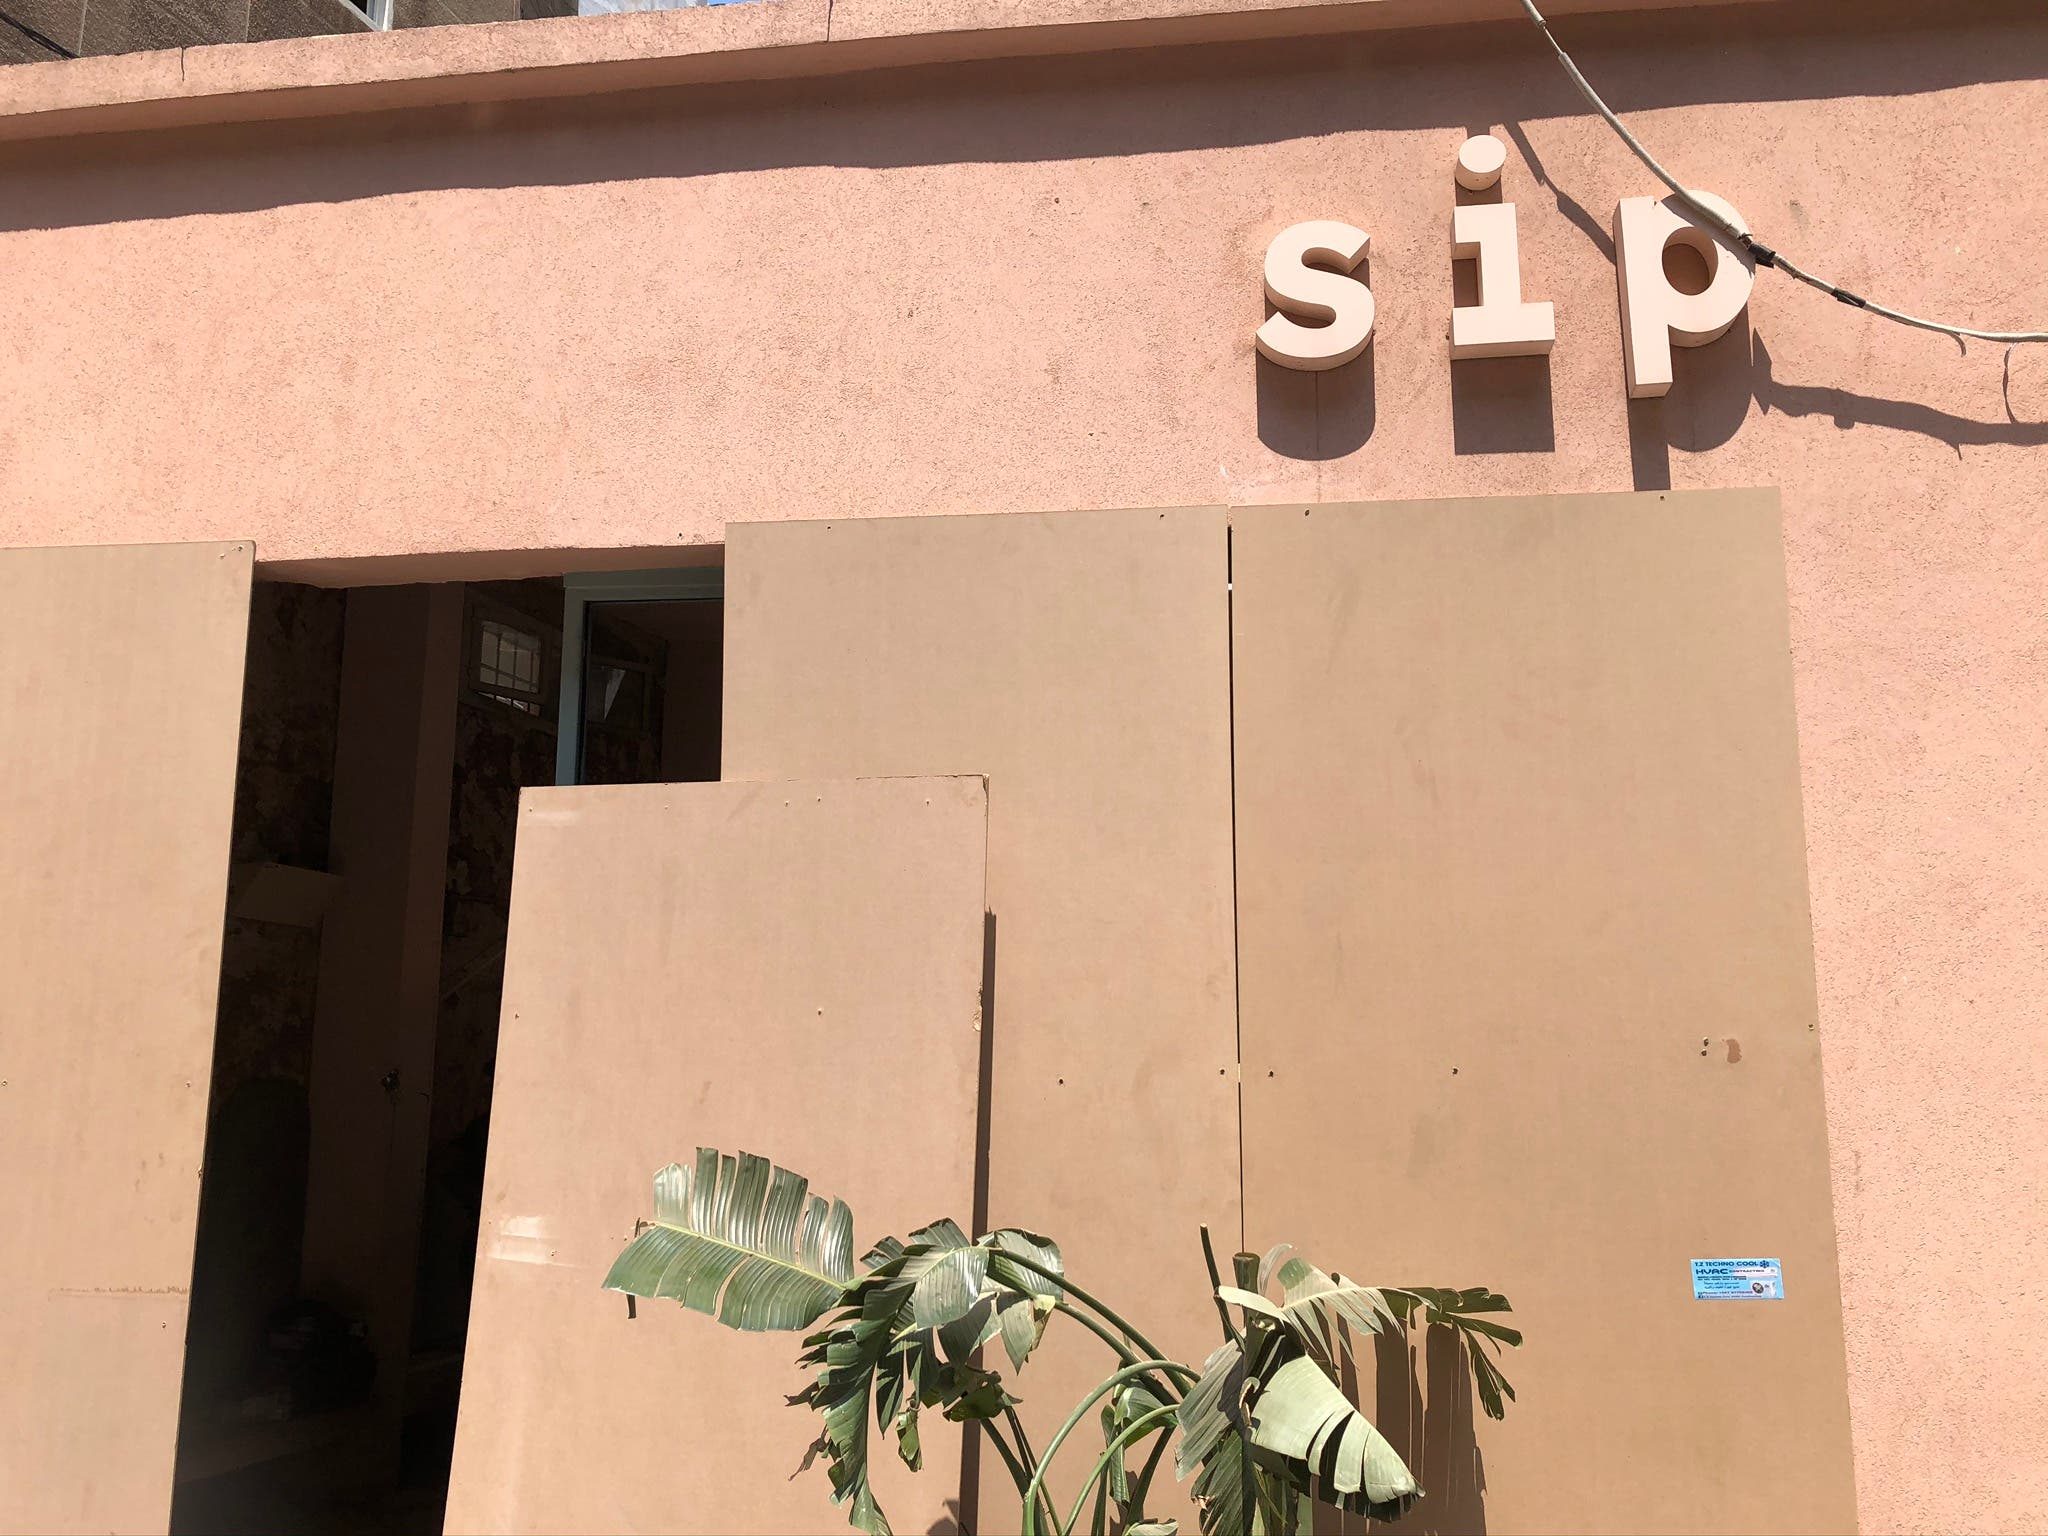 Sip cafe, located in a trendy Beirut neighborhood, was badly damaged in the August 4 explosion at port in Lebanon's capital. (Bassam Zaazaa)